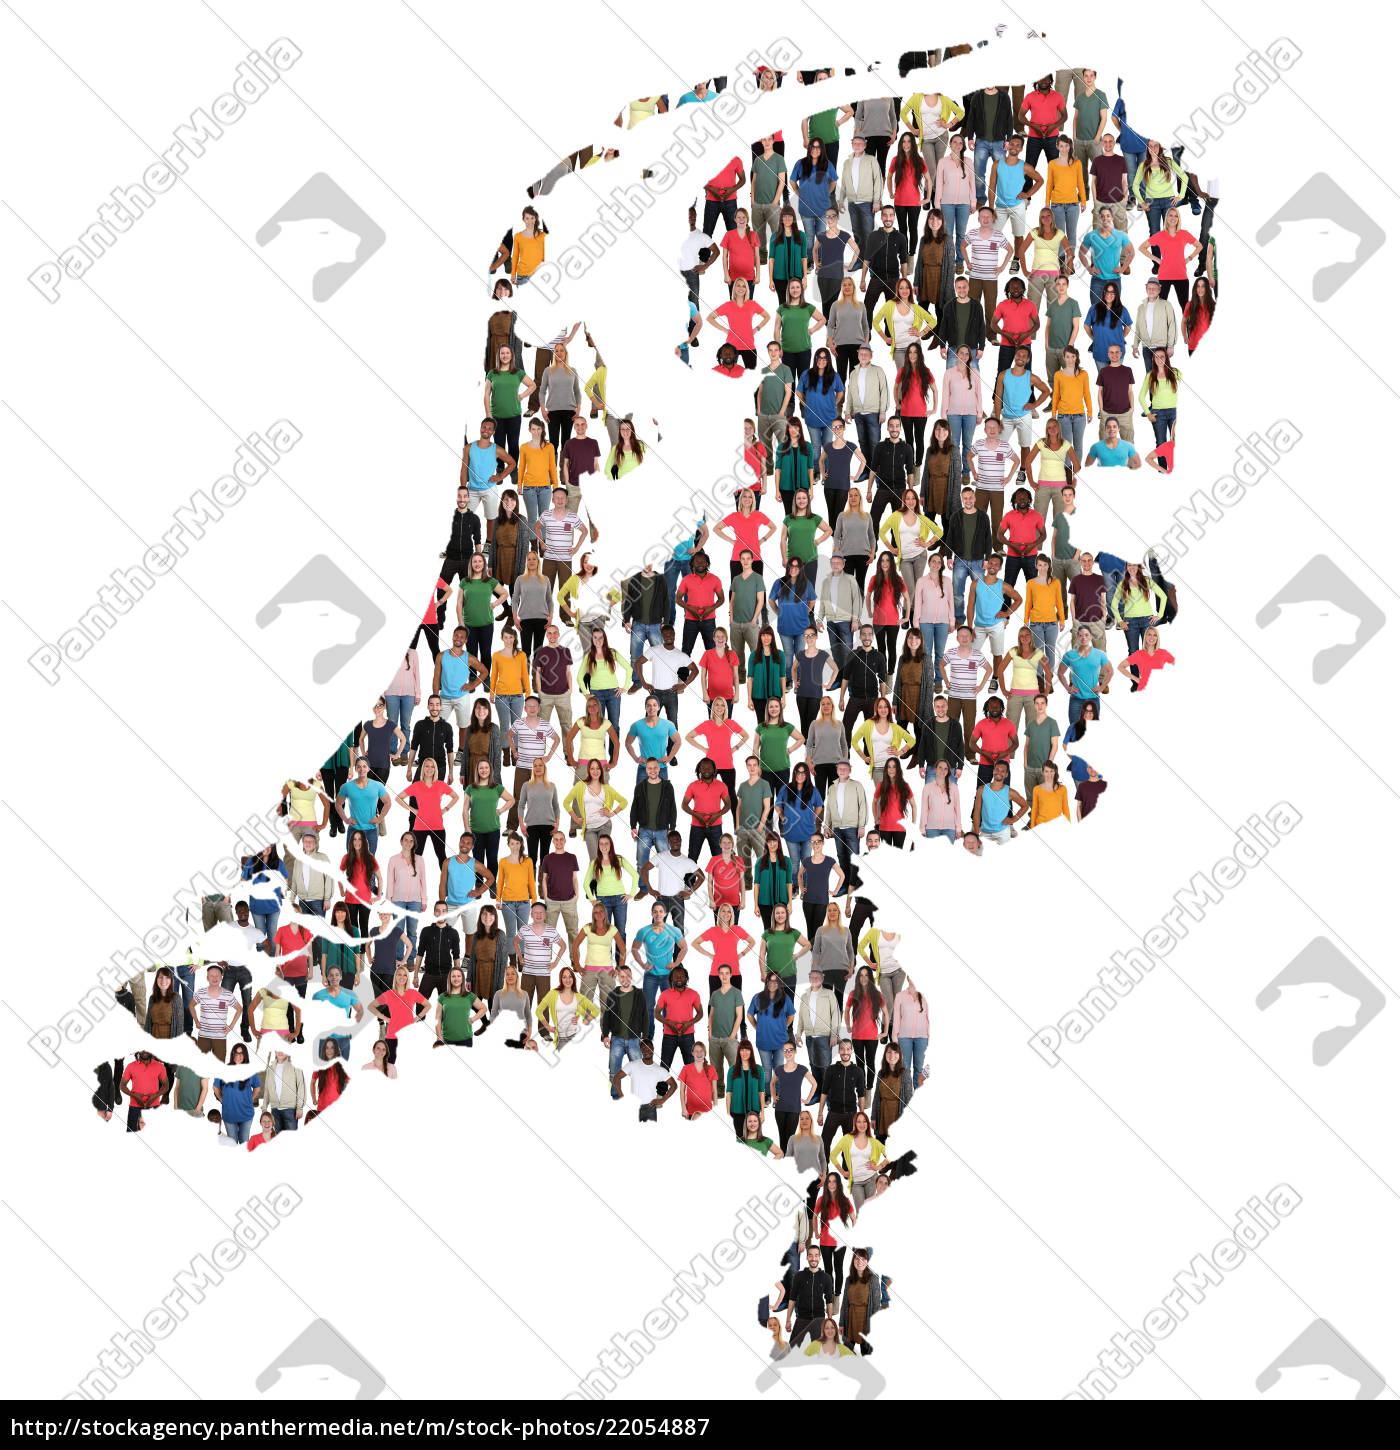 Royalty free image 22054887 - netherlands holland map people people people  group people